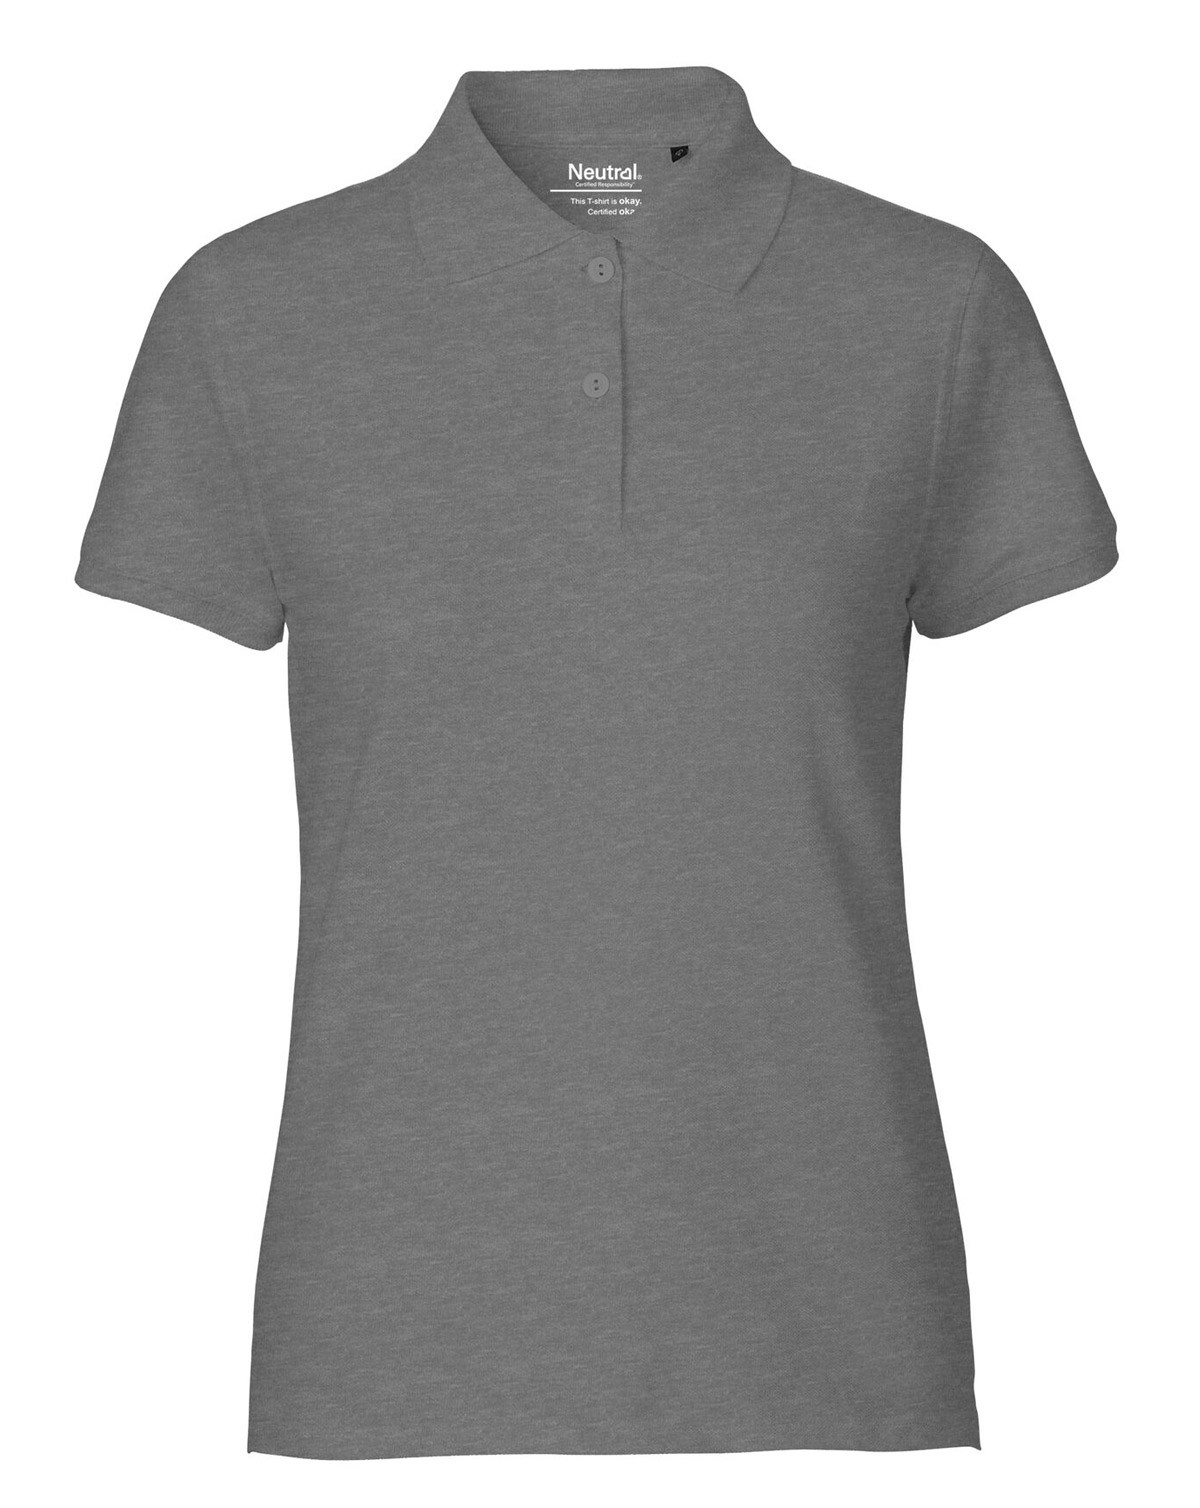 Neutral Ekologisk Dam Klassisk Polotröja (Dark Grey, L)